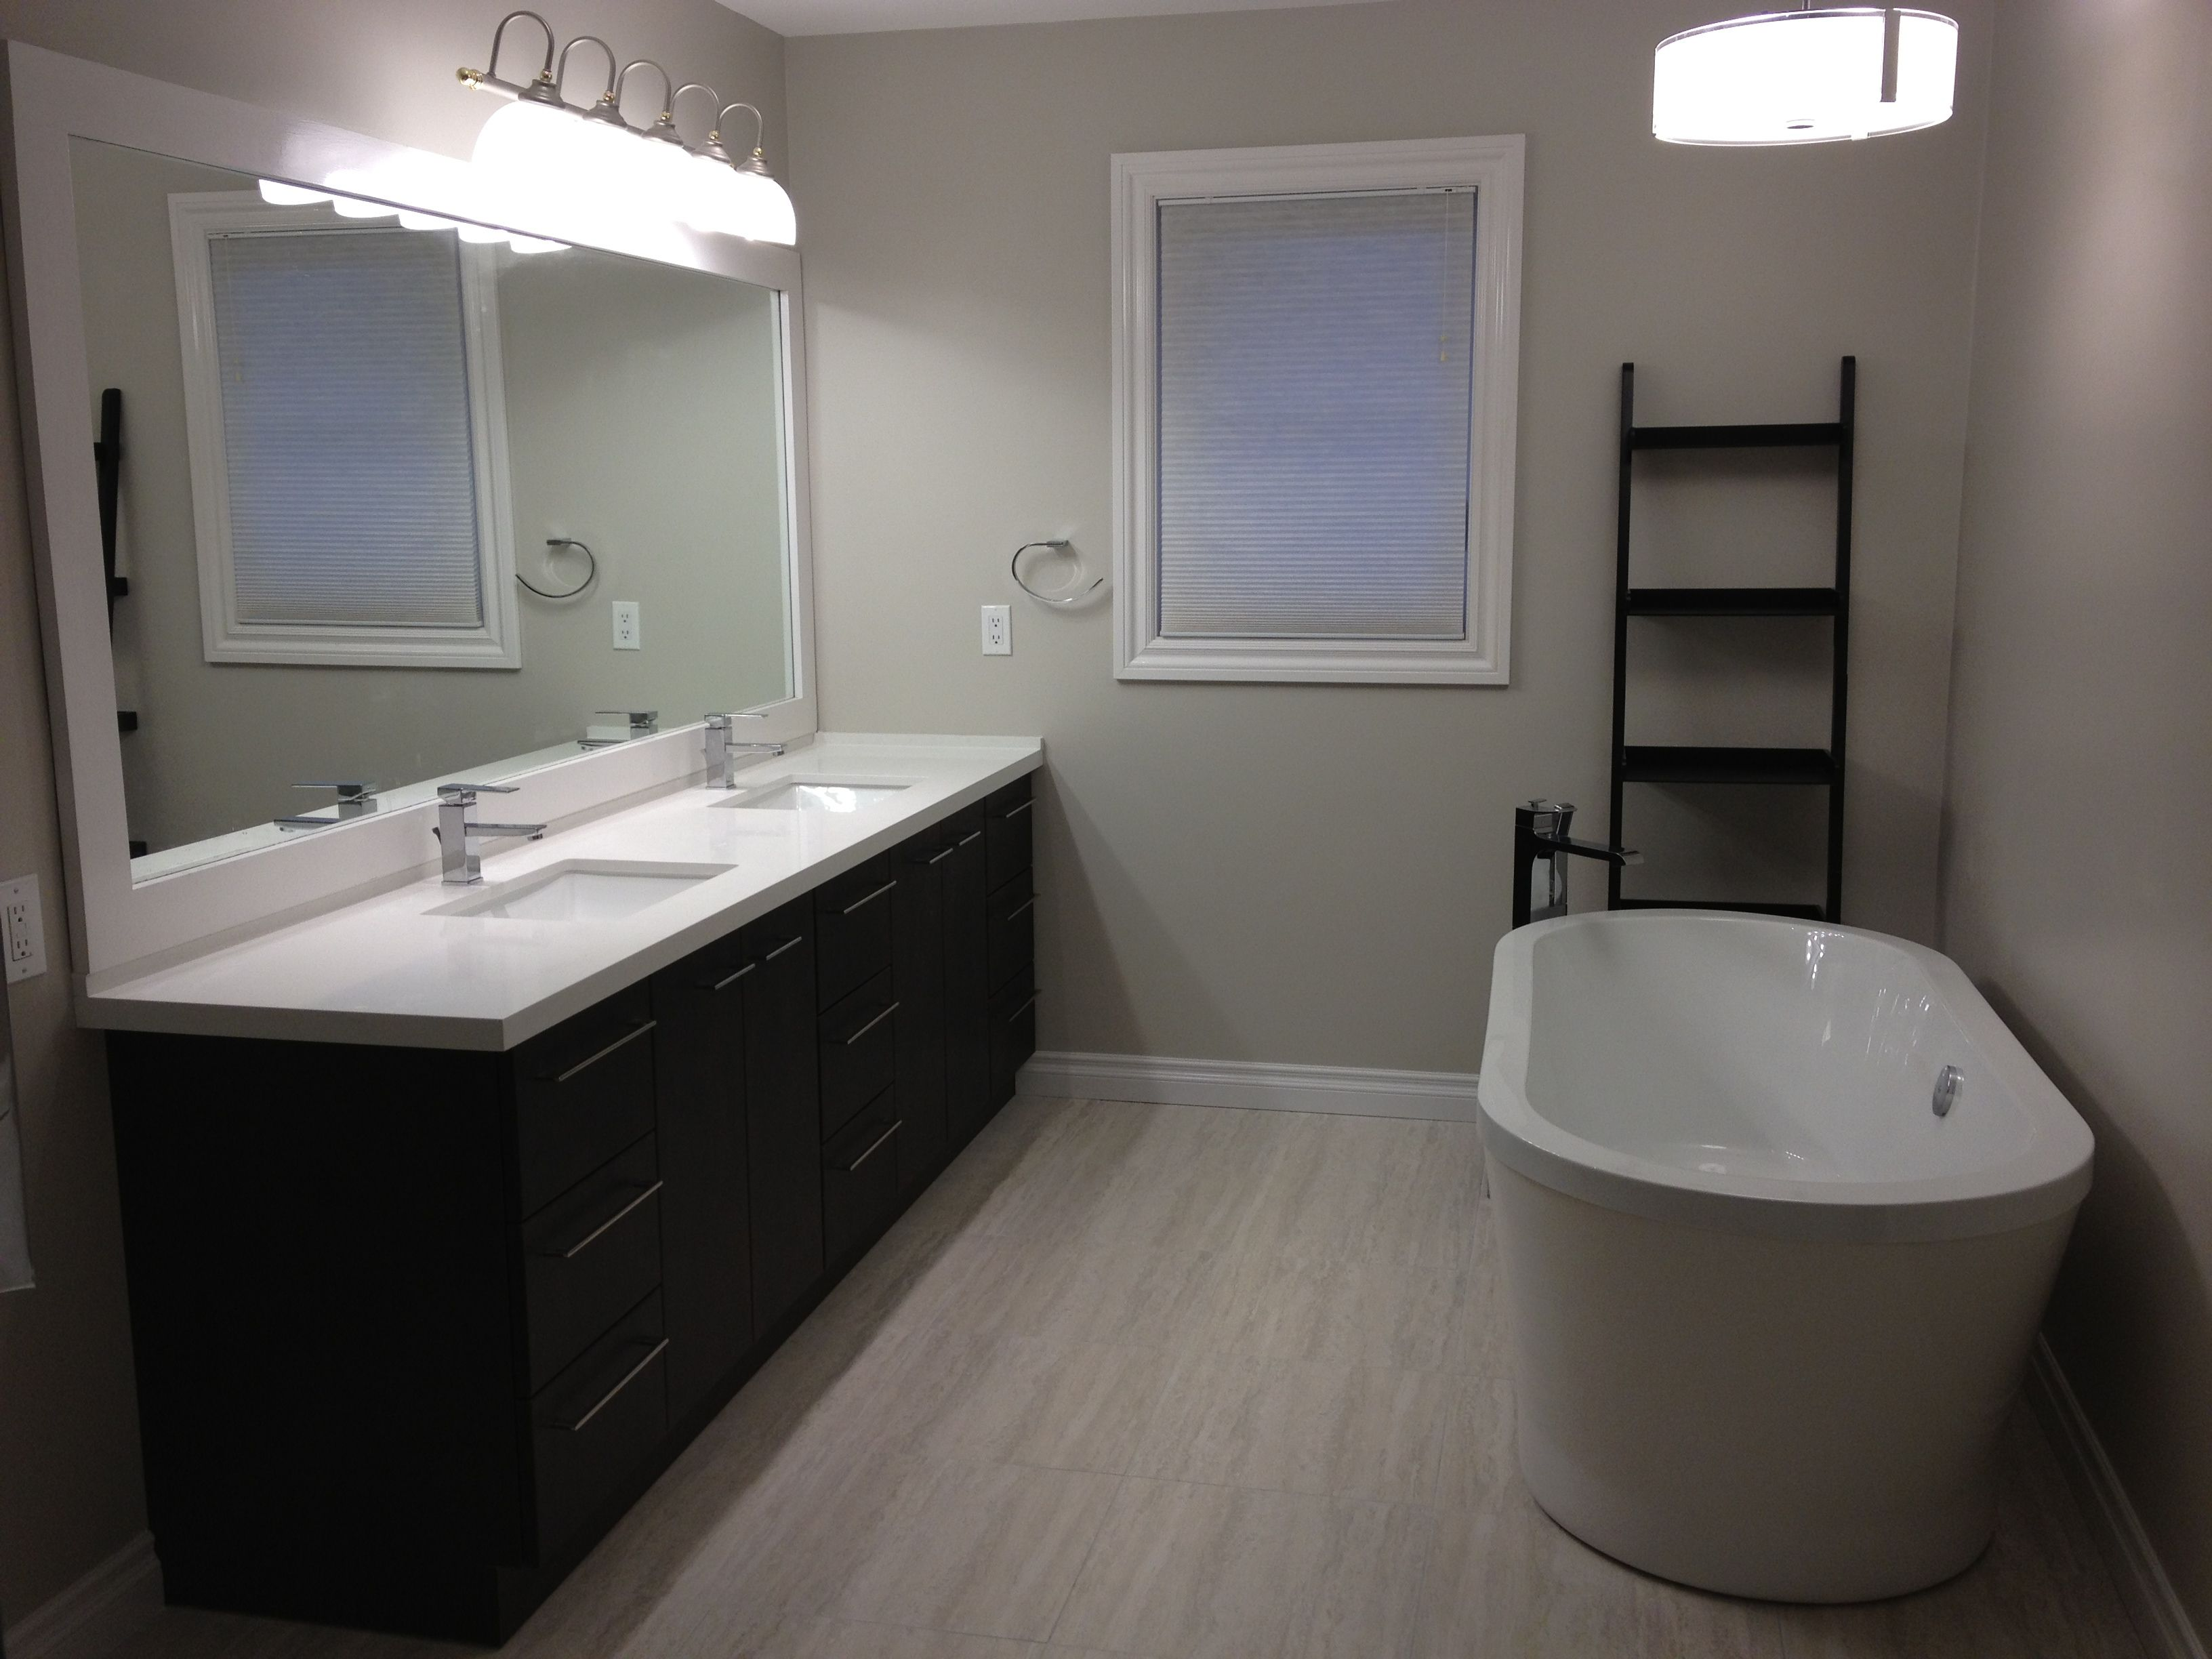 Bathroom reno for the home pinterest kitchens and house for Reno bathroom ideas